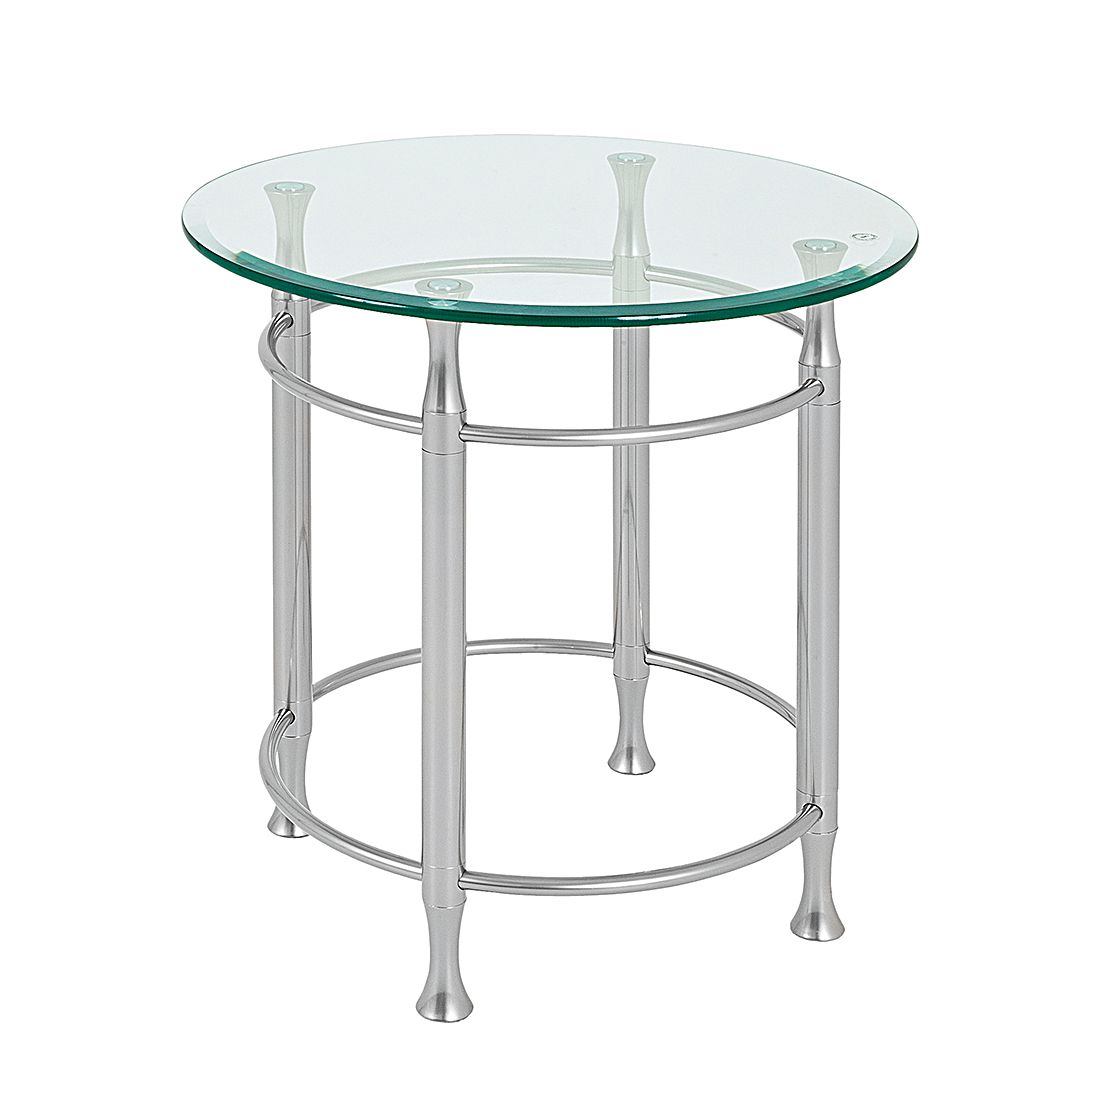 Table d'appoint Vienne